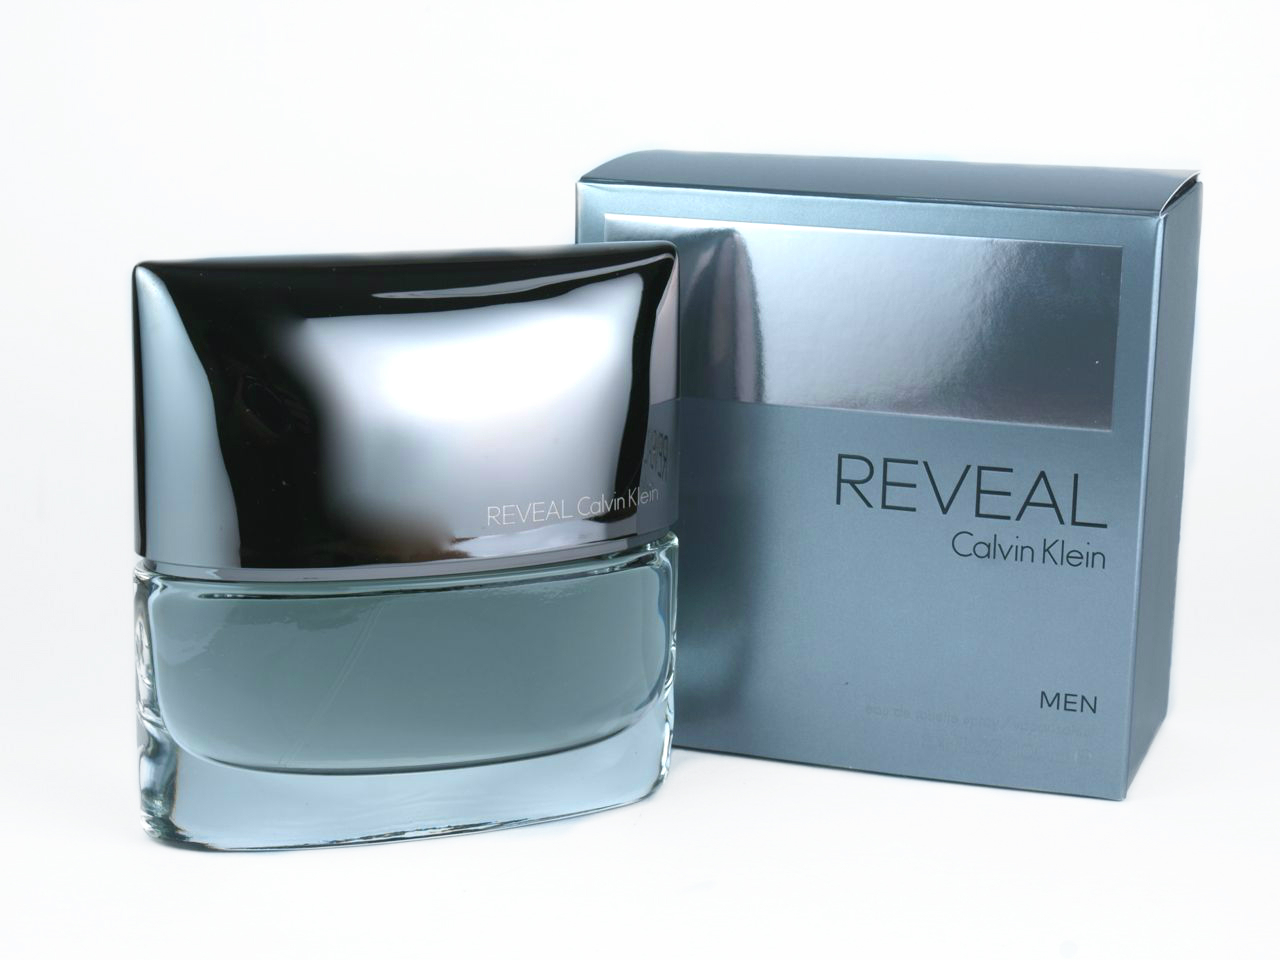 Calvin Klein Reveal Men Eau de Toilette Spray: Review